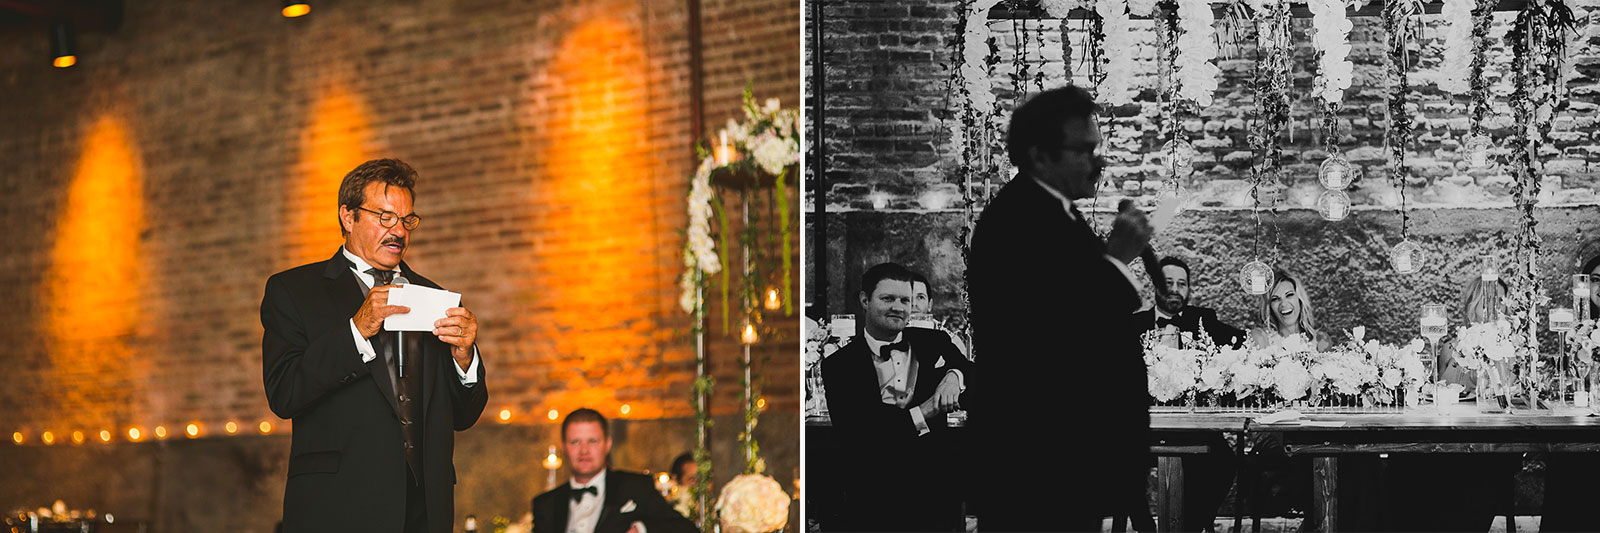 65 speech photography - Chicago Wedding Photography at Gallery 1028 // Courtnie + David